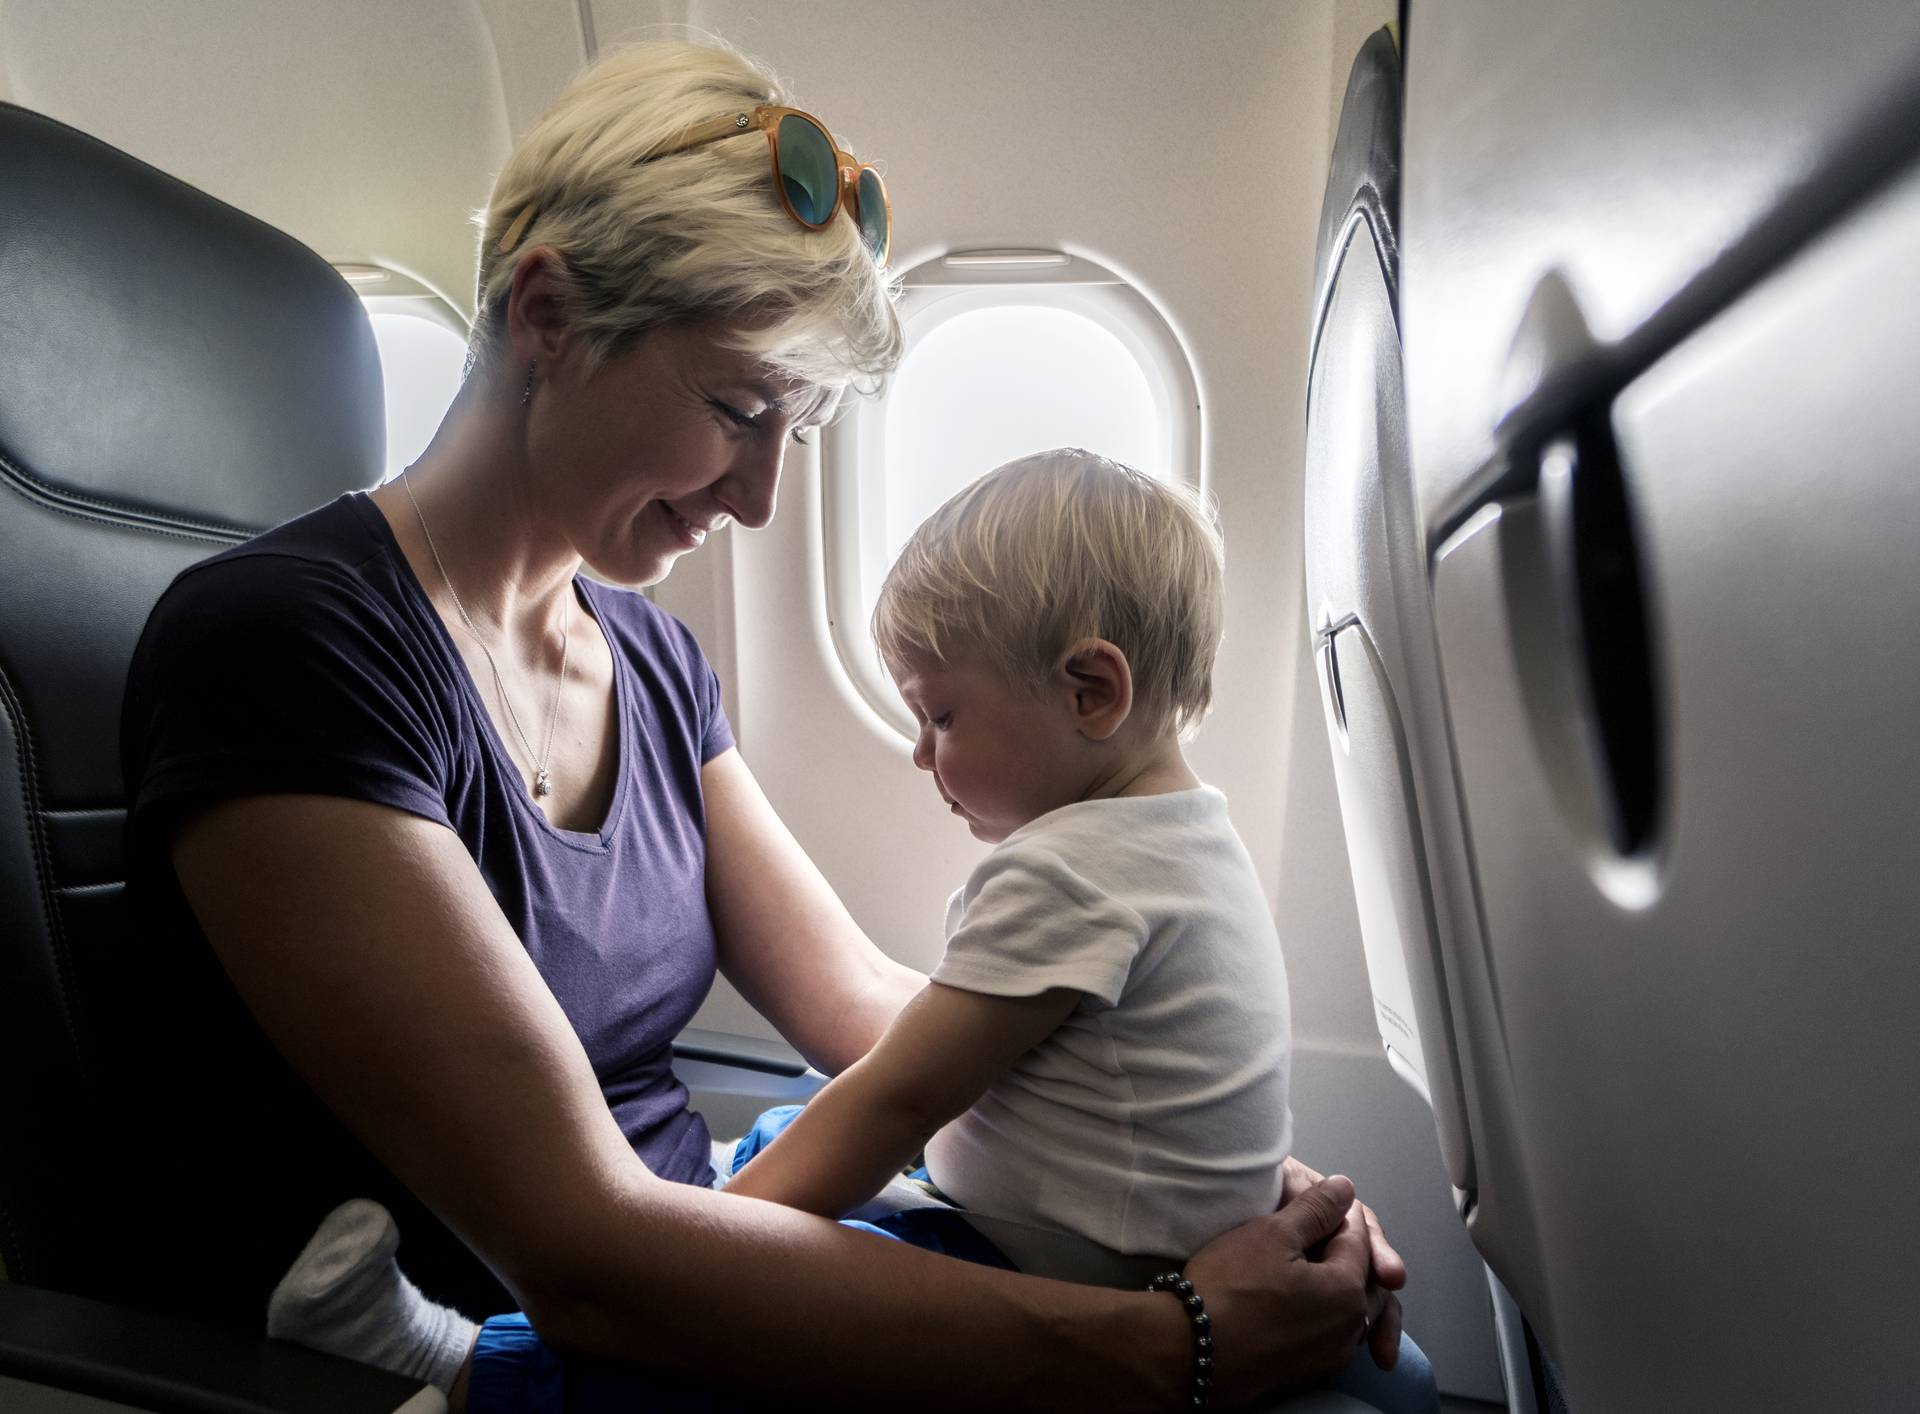 Mom spending time with her one year old baby boy during flight